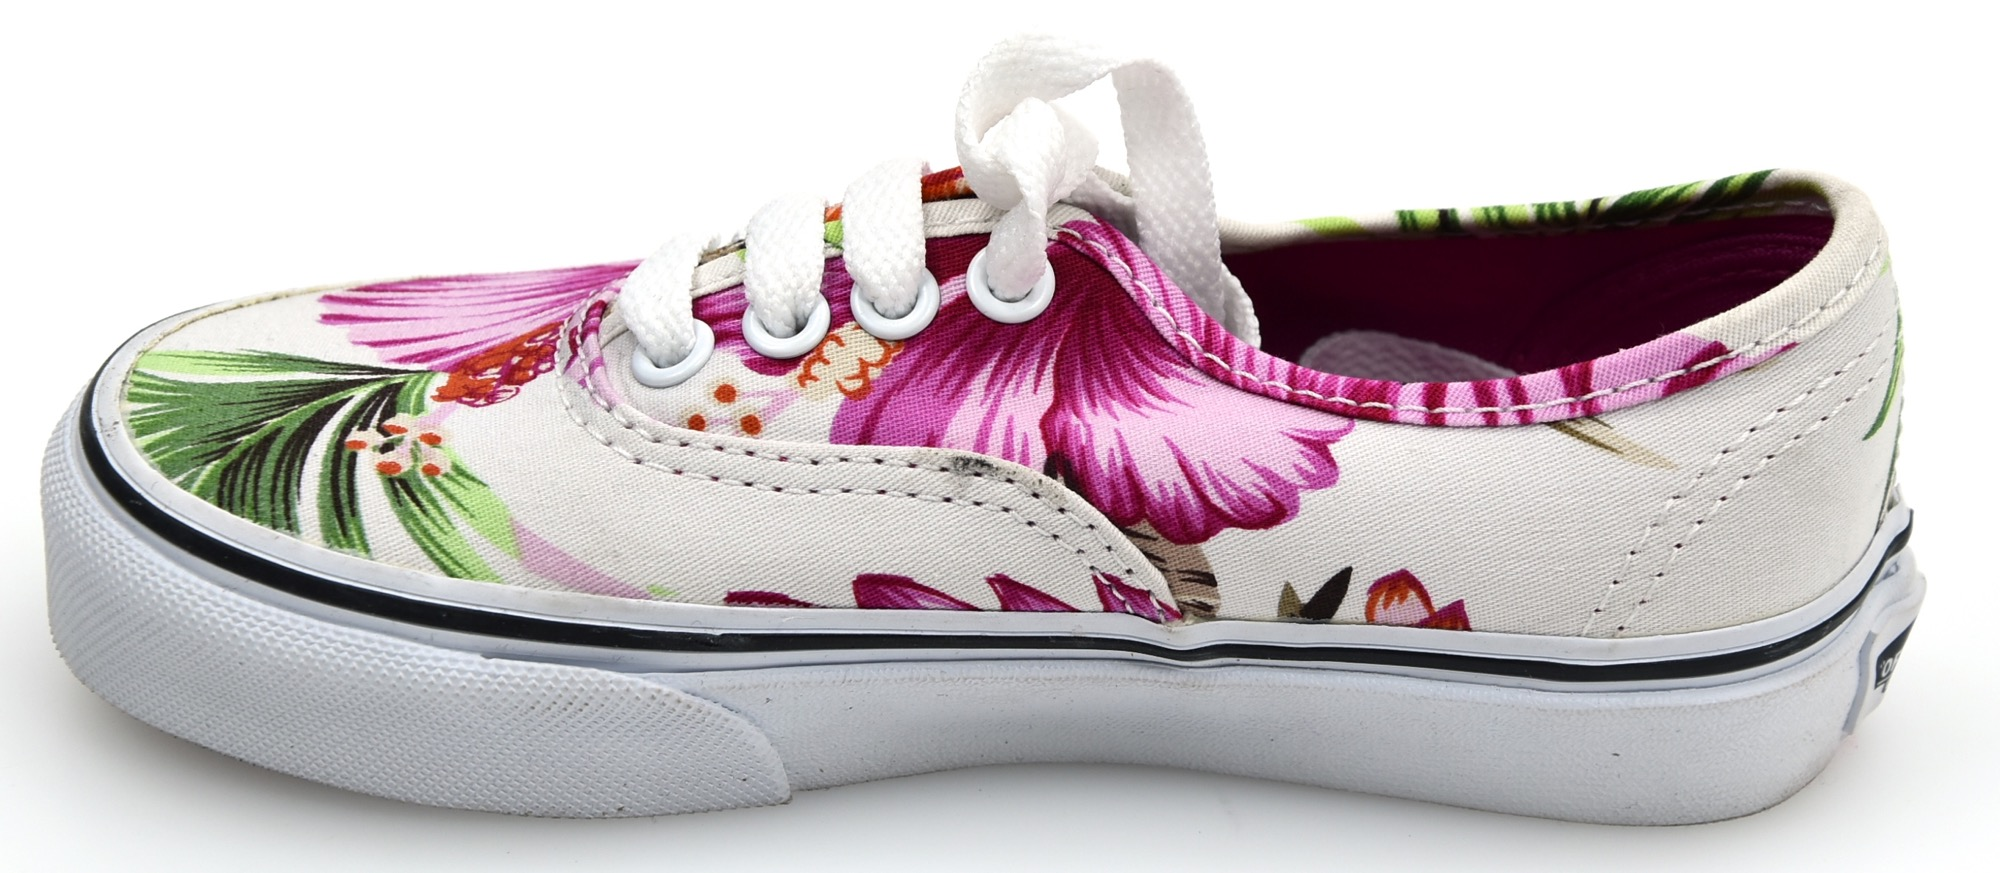 half off c0424 41417 VANS JUNIOR GIRL SNEAKER SHOES CASUAL FREE TIME HAWAIIAN FLORAL AUTHENTIC  ZUQFG0